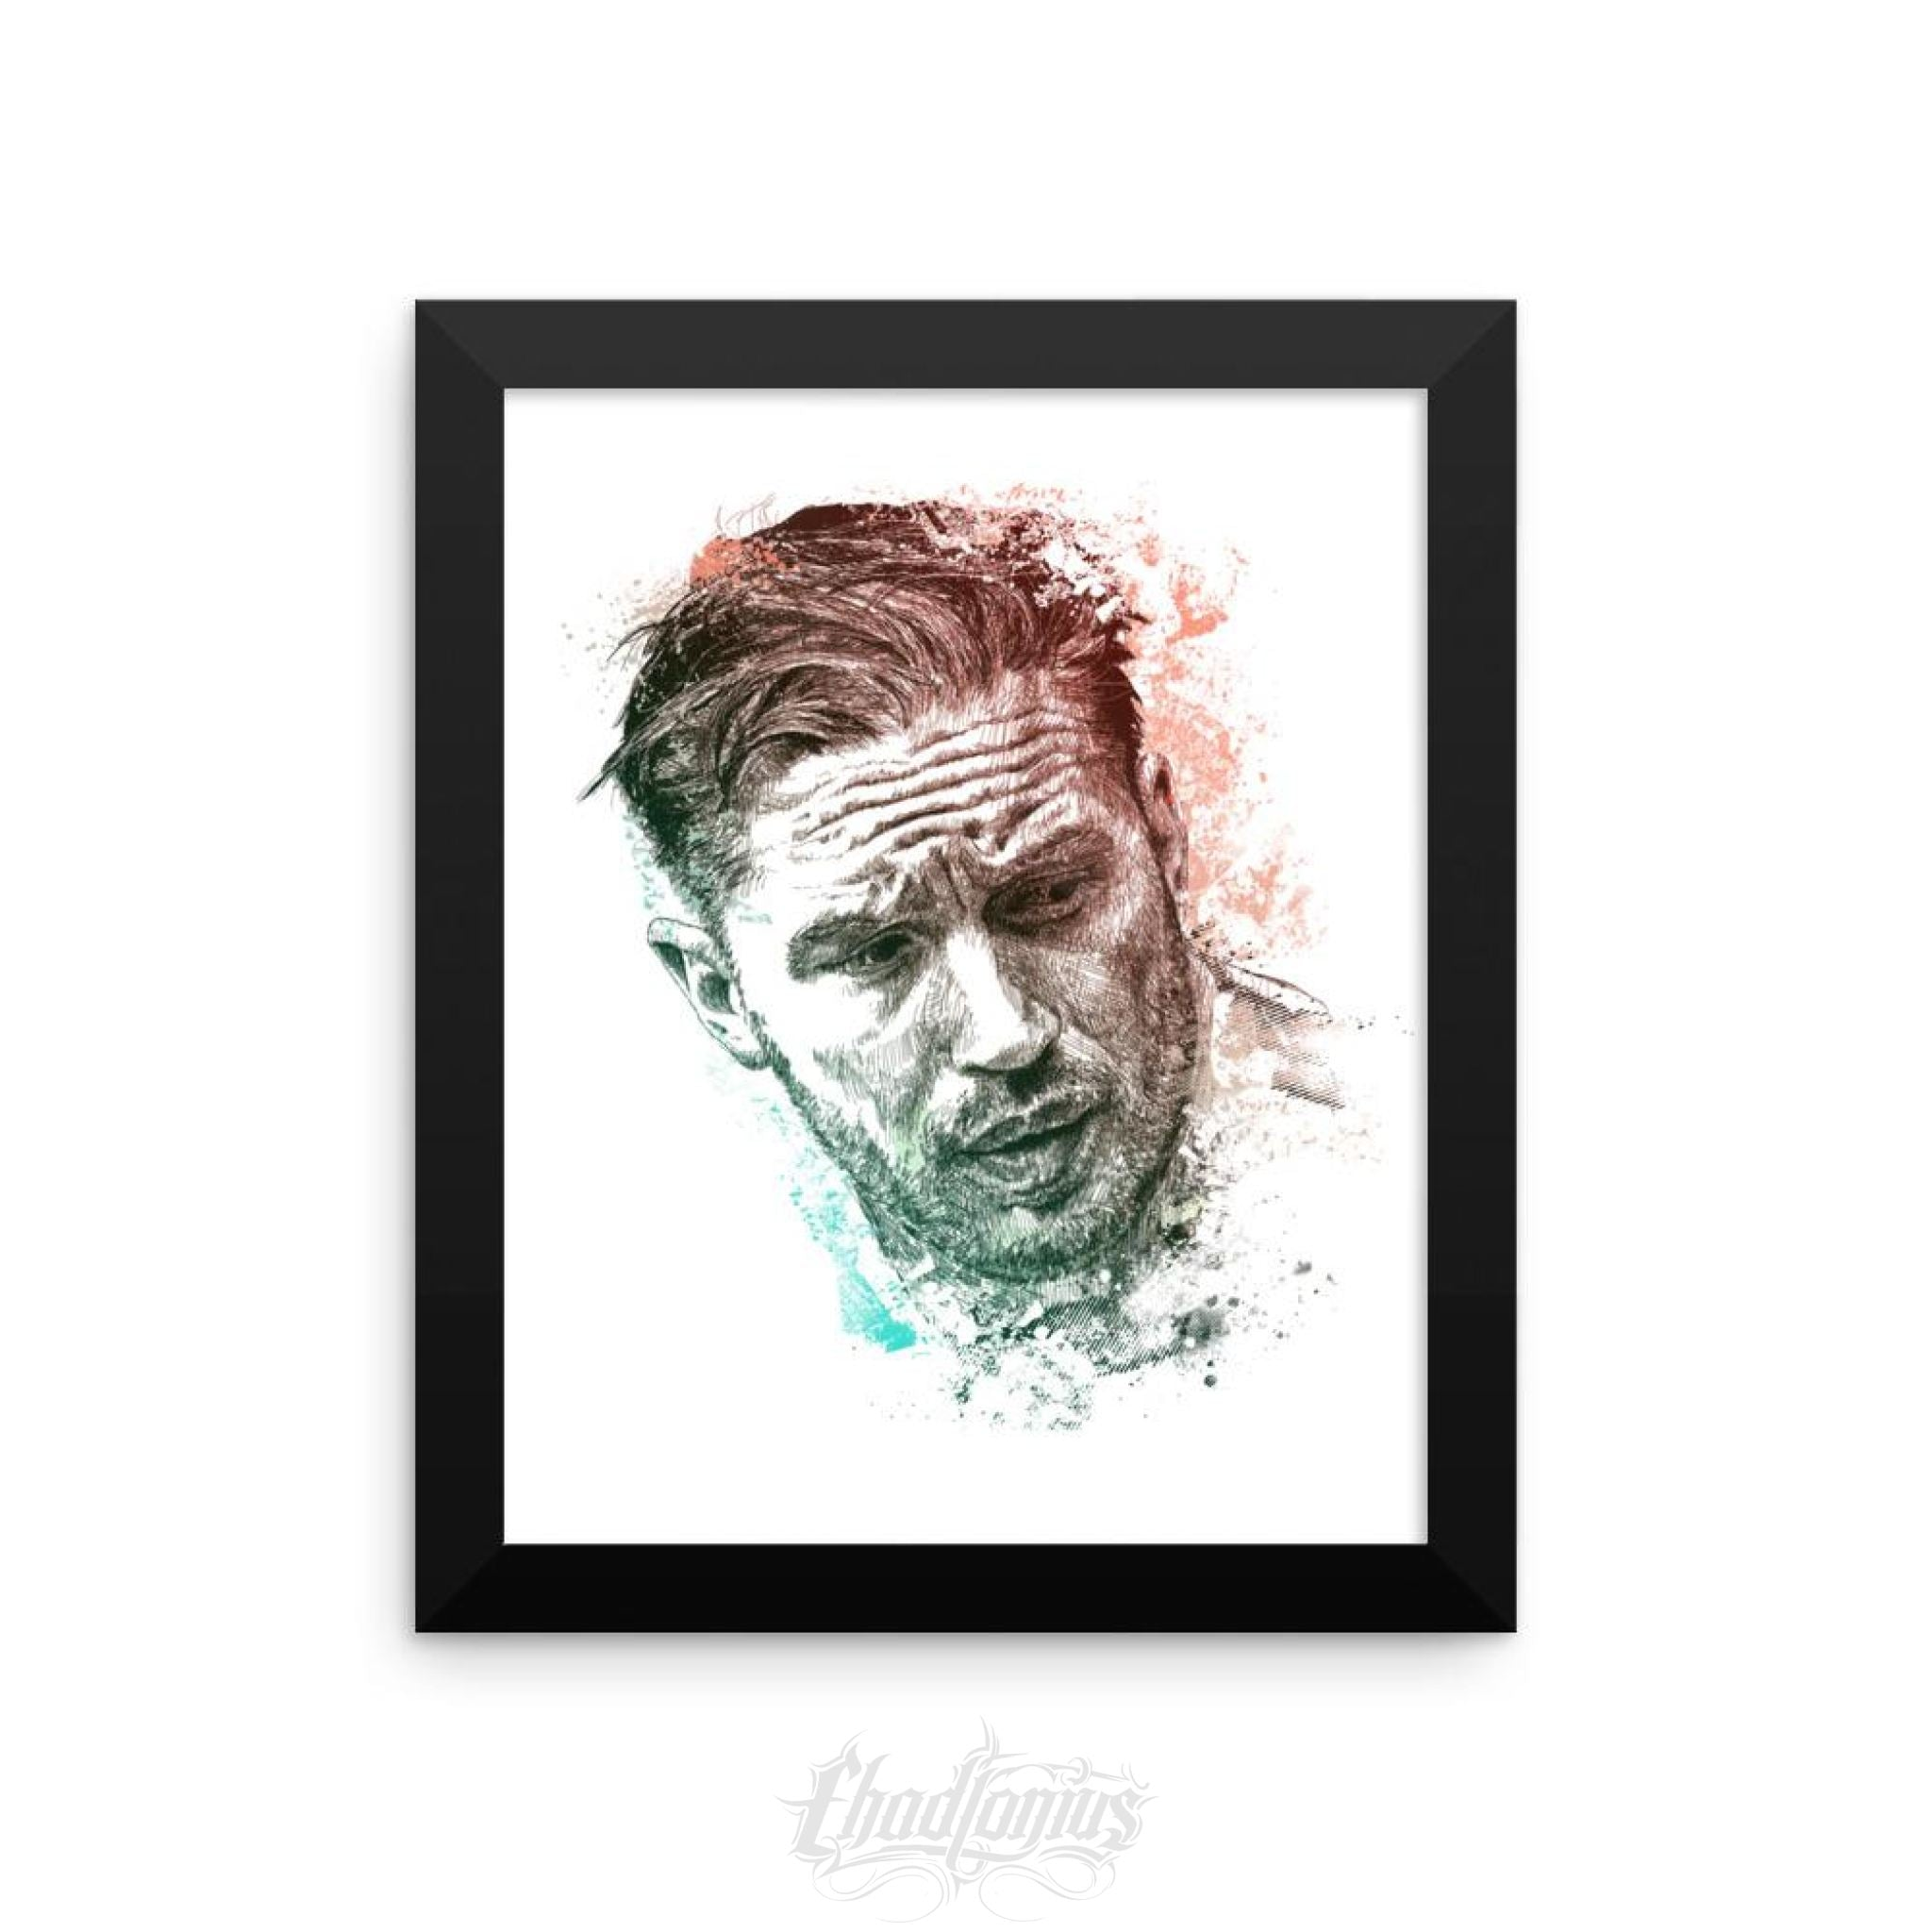 Tom Hardy - Framed Photo Paper Poster 8×10 Framed Chadlonius